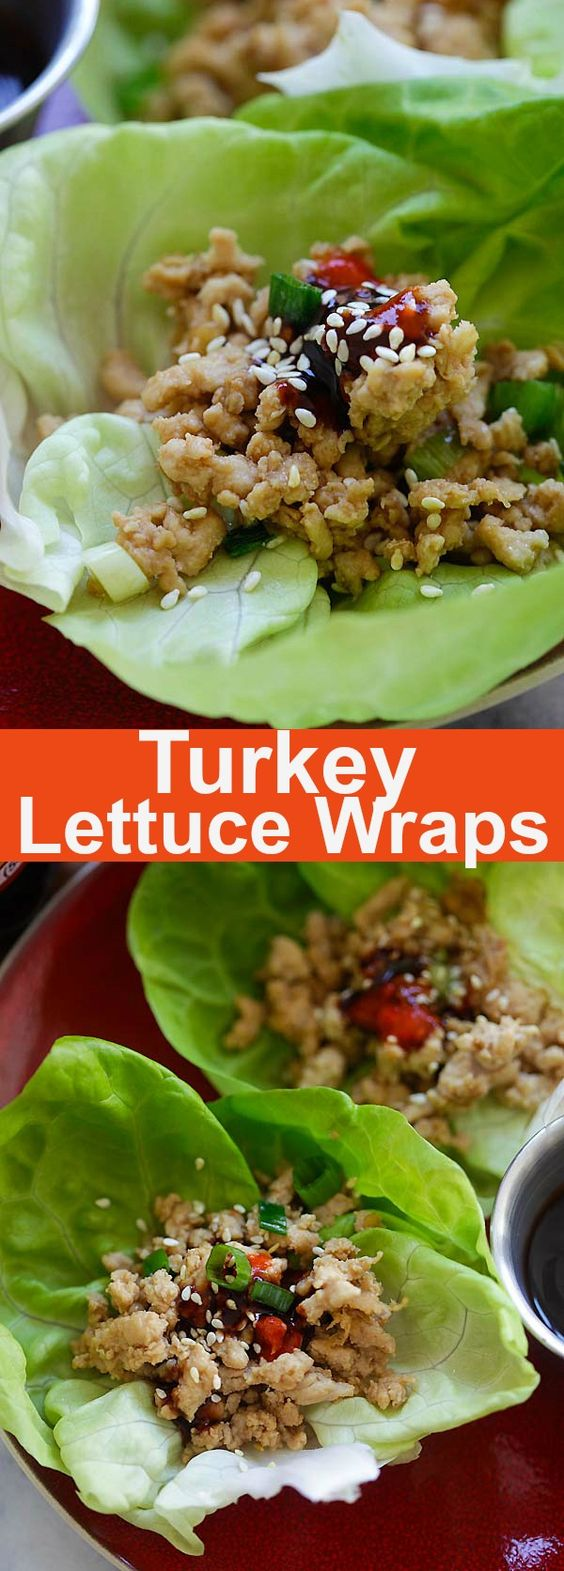 Turkey Lettuce Wraps – healthy lettuce wraps recipe with ground turkey with a Hoisin-Sriracha dipping sauce. Perfect appetizer for Thanksgiving   rasamalaysia.com